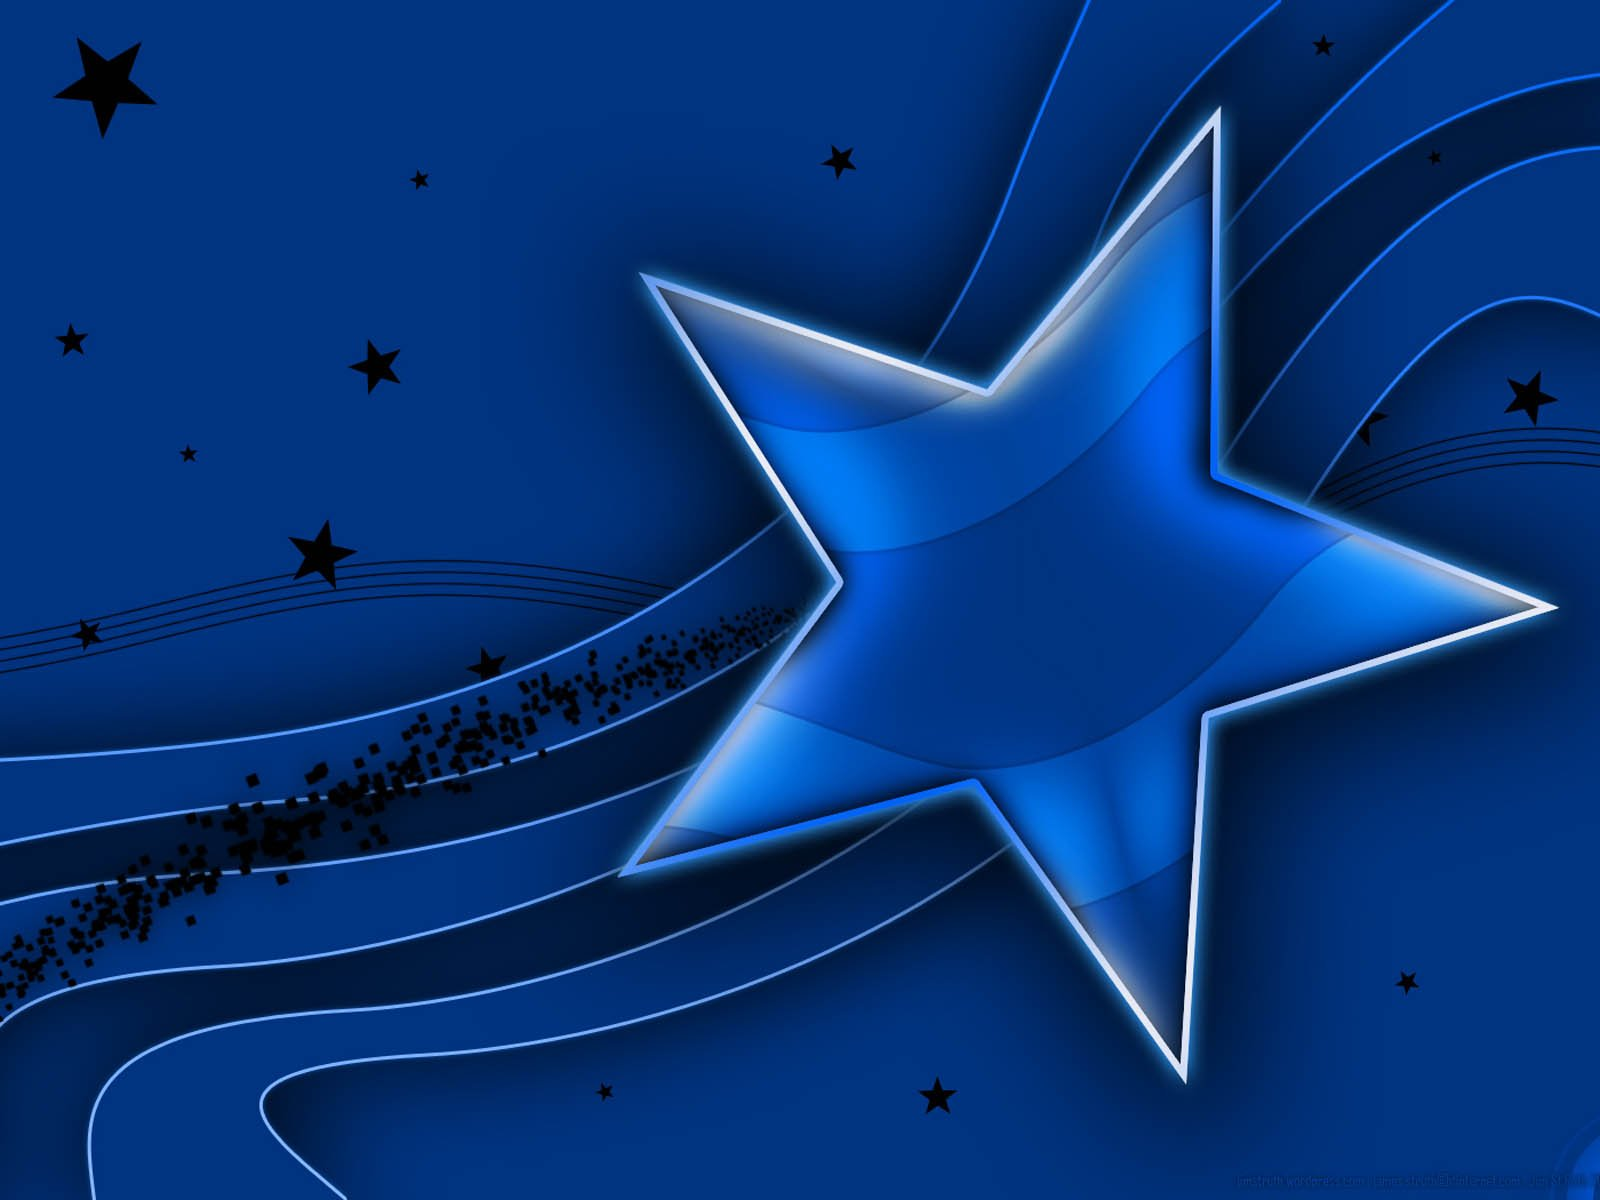 wallpapers 3D Stars Wallpapers 1600x1200